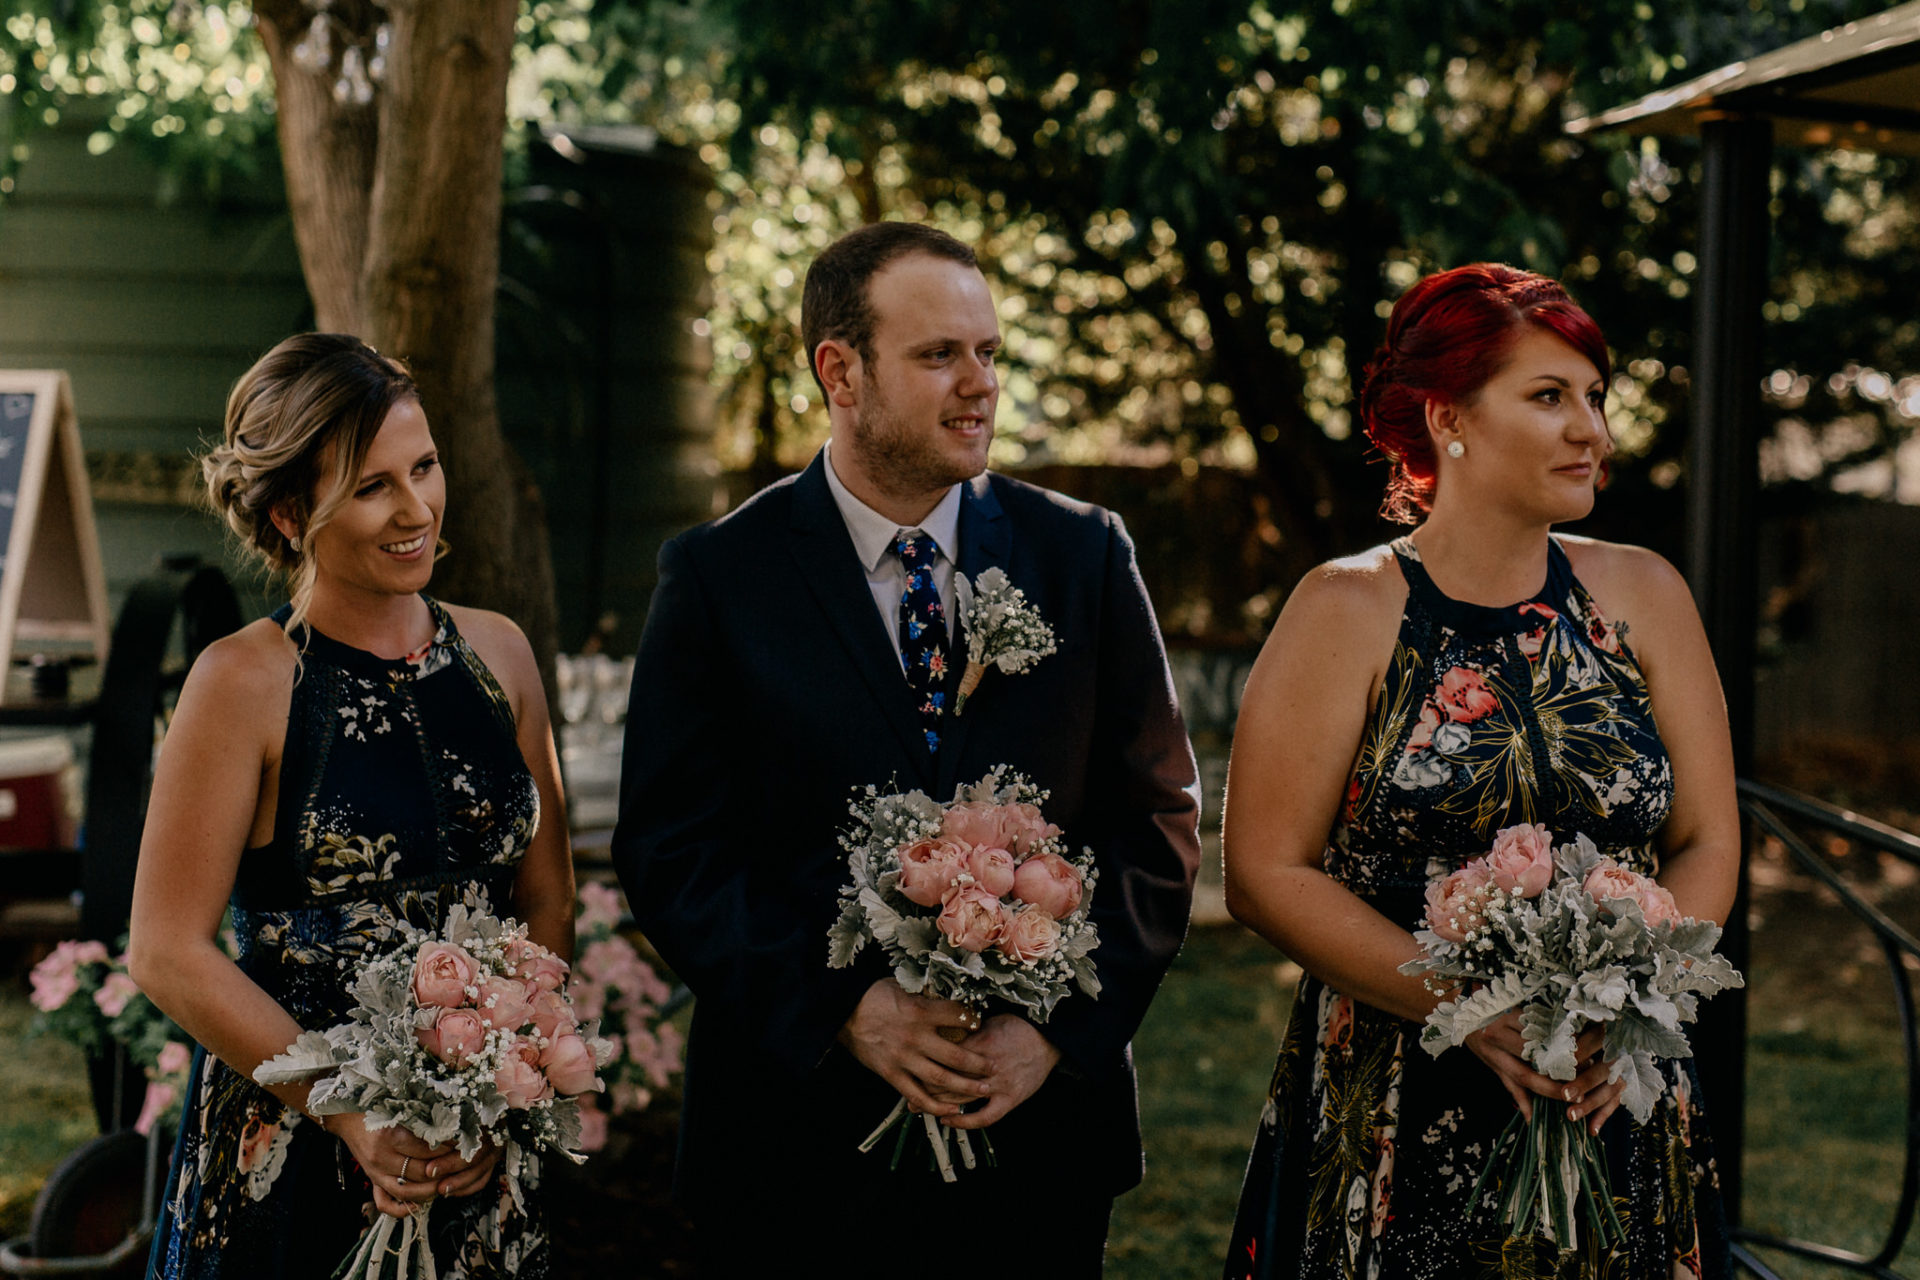 backyard-wedding-australia-melbourne-ceremony-bridal-party